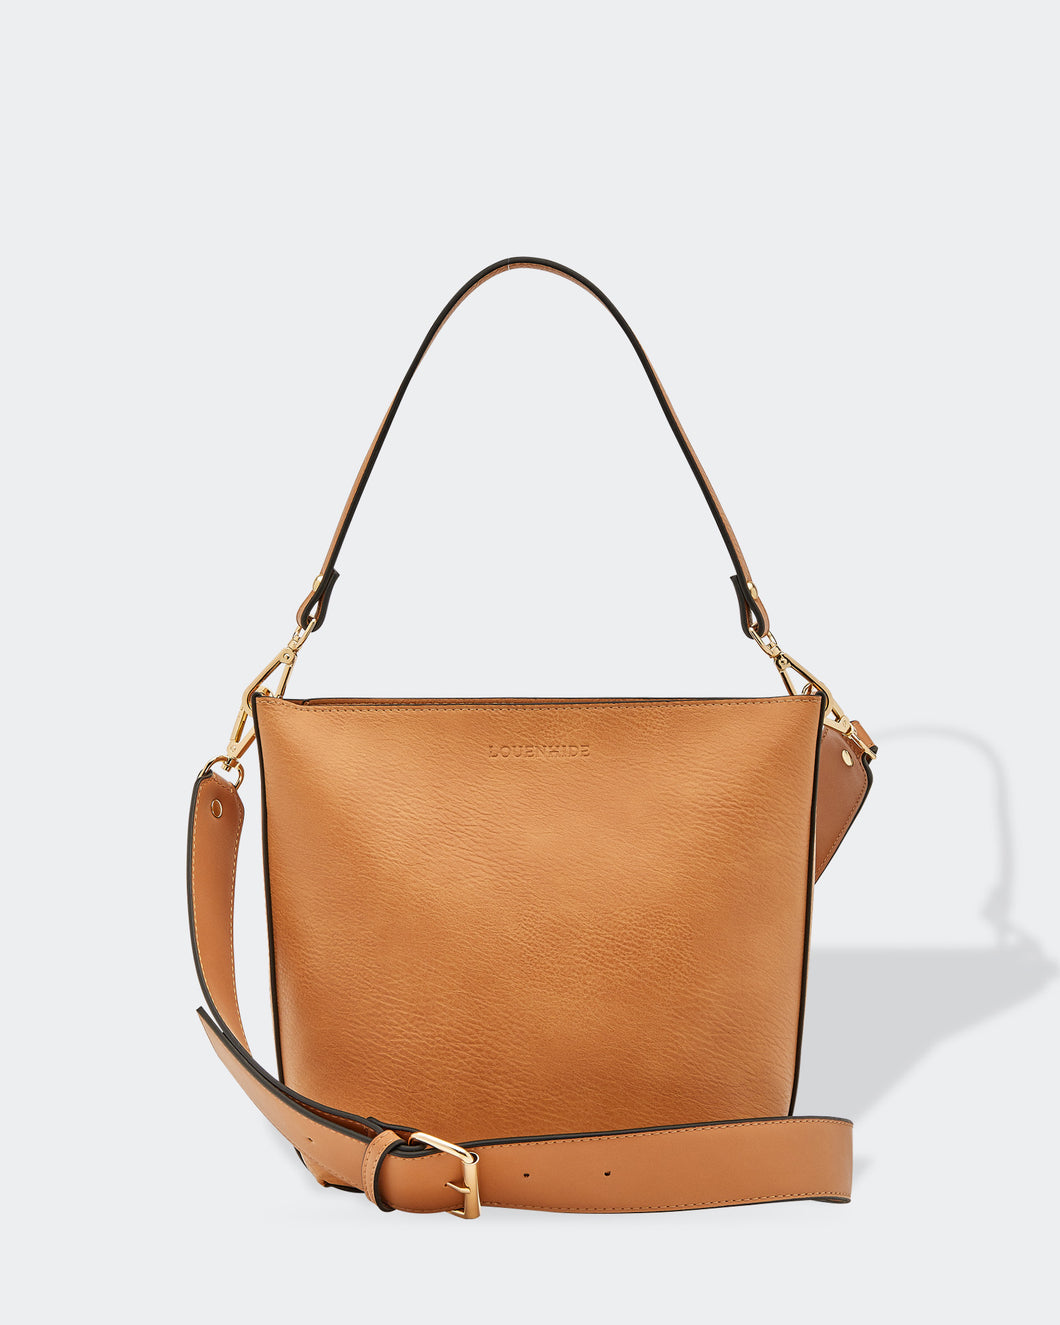 LOUENHIDE CHARLIE CROSS BODY BAG - NUTMEG